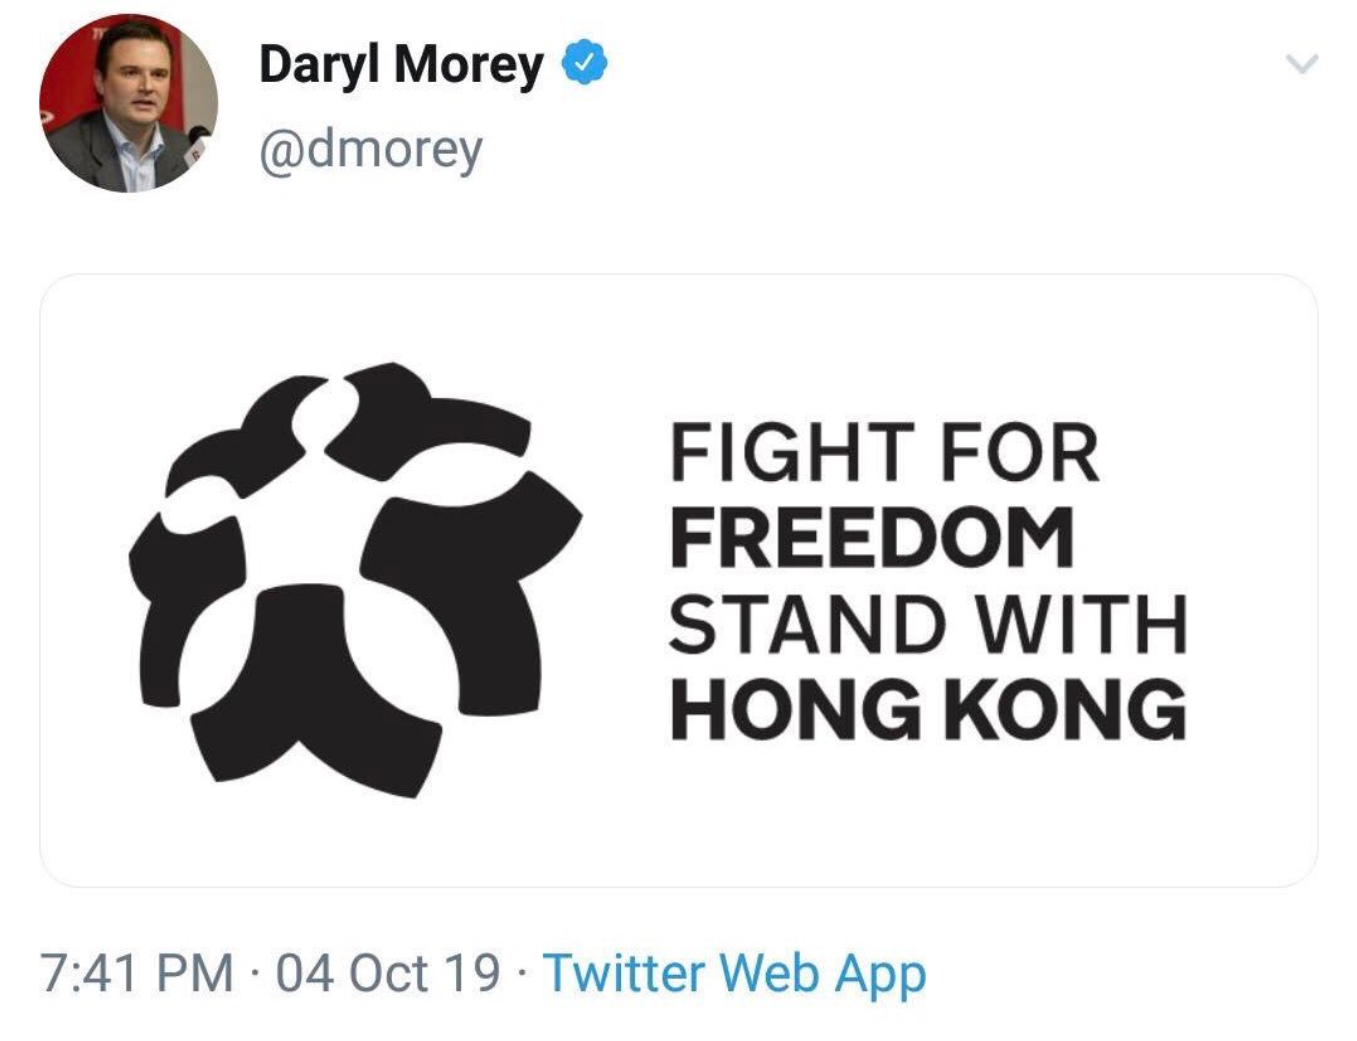 This tweet by Morey created an uproar.